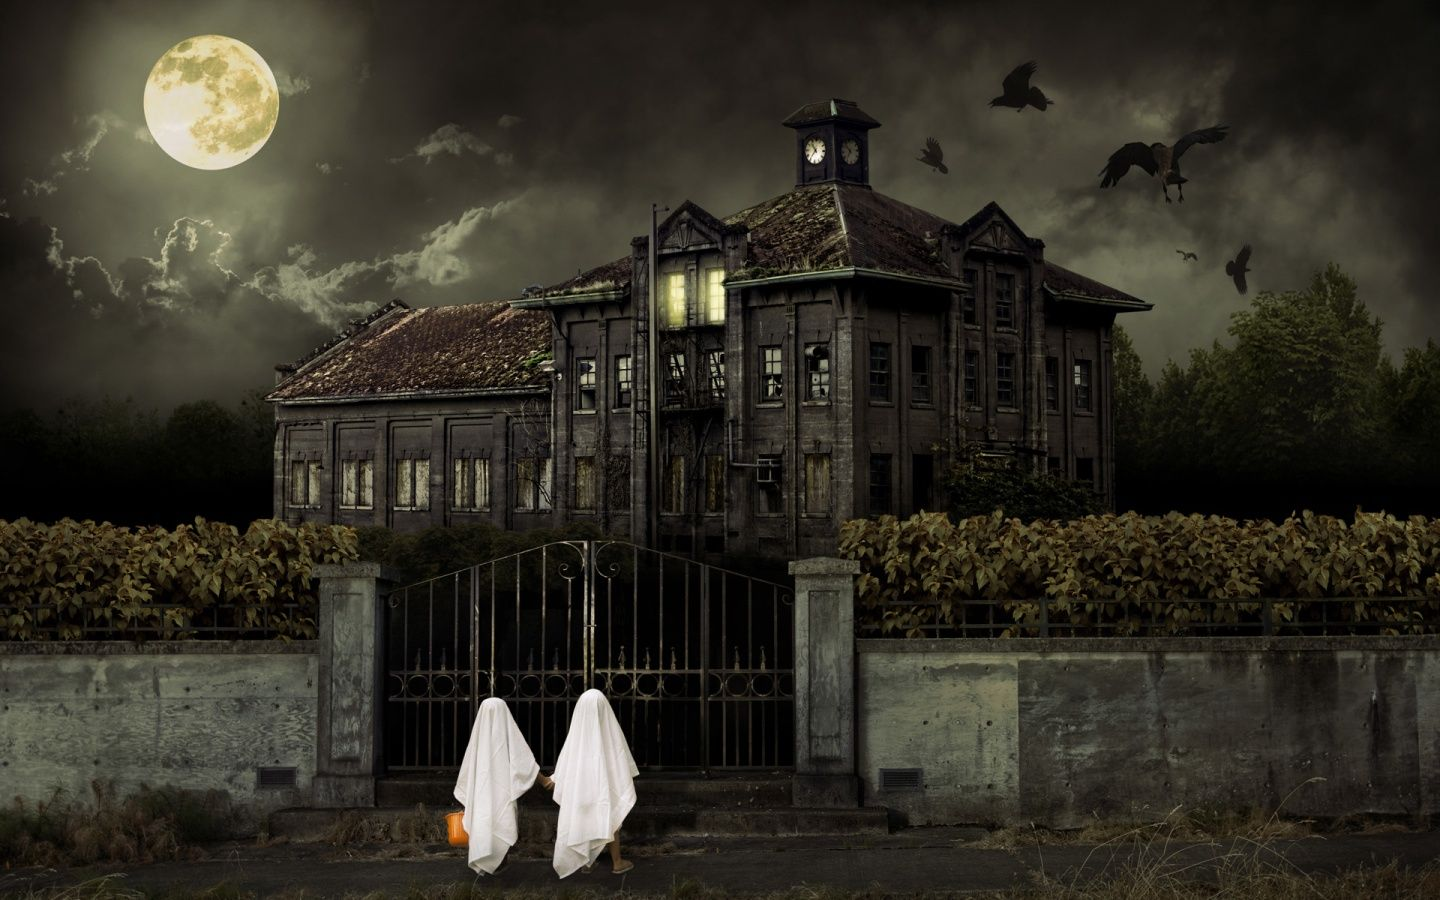 halloween haunted house wallpaper halloween haunted house hd wallpaper haunted hd wallpaper 3d - Halloween Haunted Places